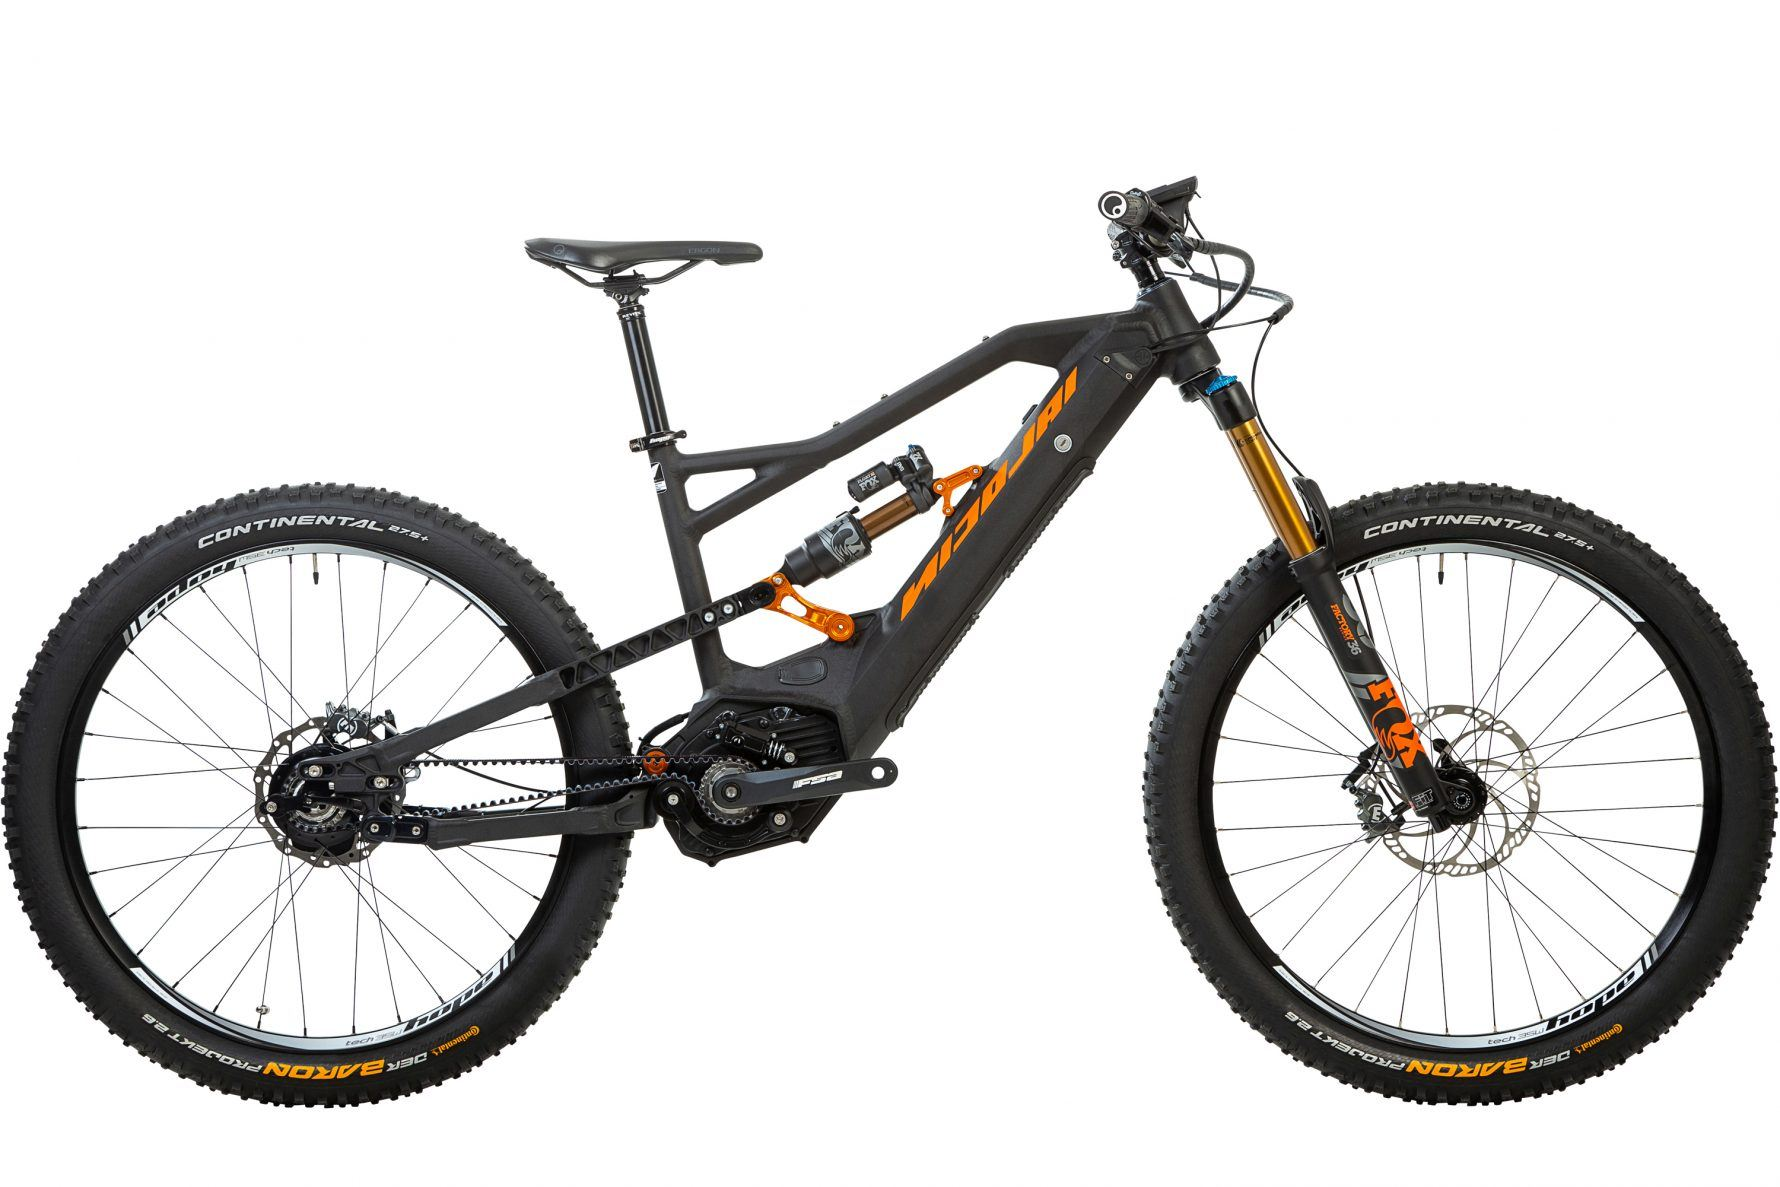 The Ion G16 EBoxx E14 from Nicolai is a super charged trail slayer